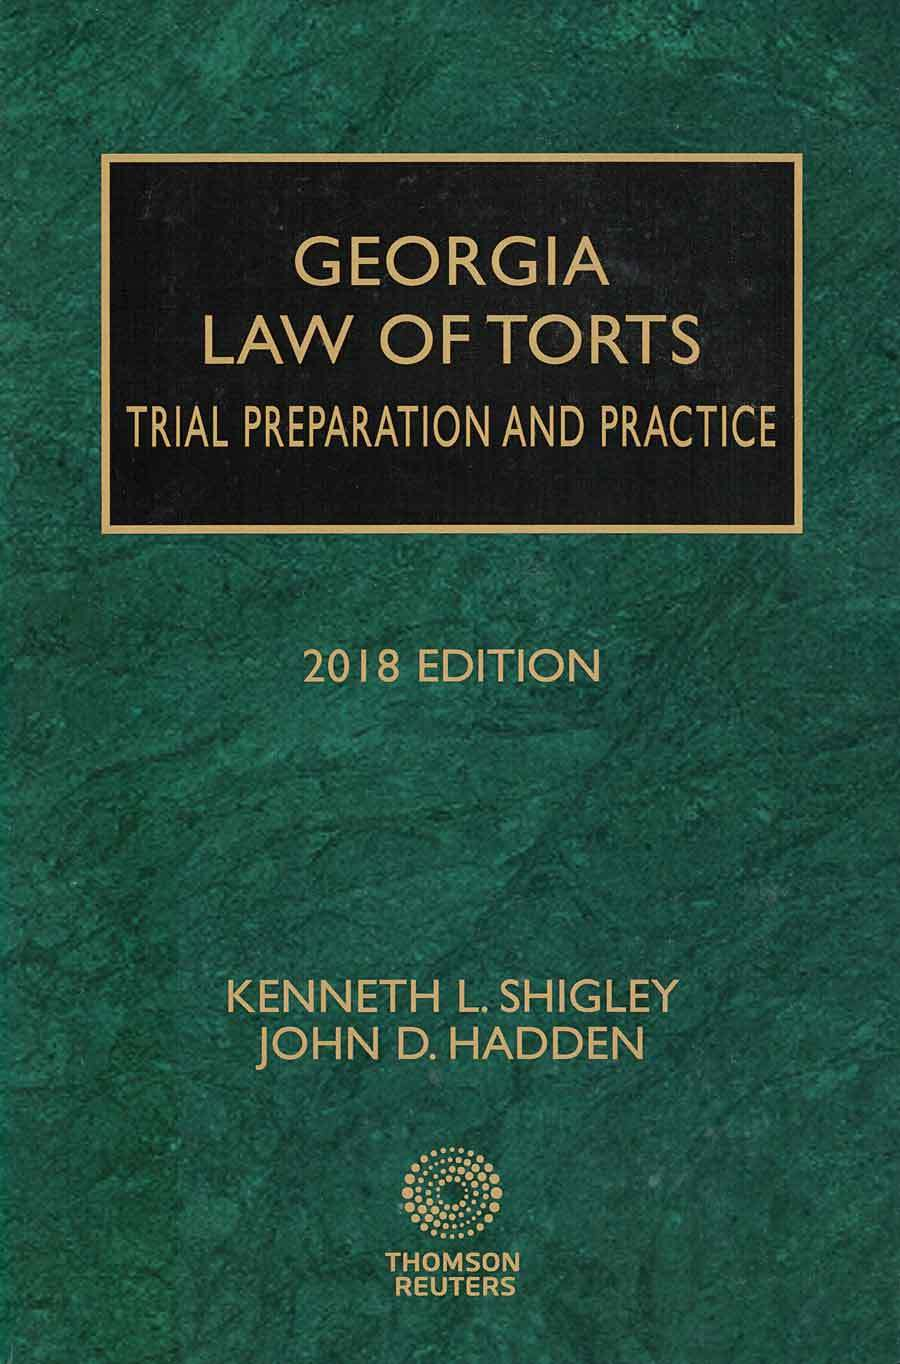 Georgia Law of Torts 2018 edition